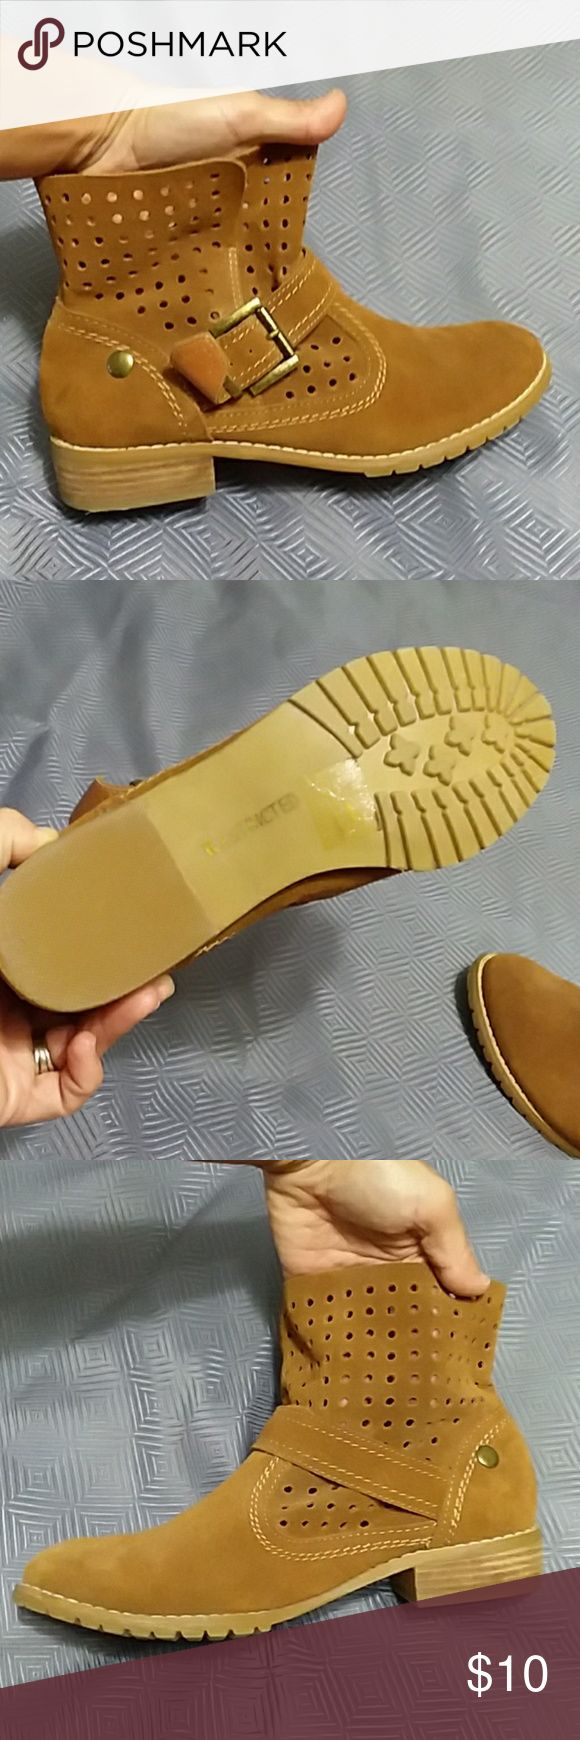 Camel colored booties Worn twice.Restricted brand, size 6.5.  Buckle on sides. Perforated shaft. Great used condition. Restricted Shoes Ankle Boots & Booties